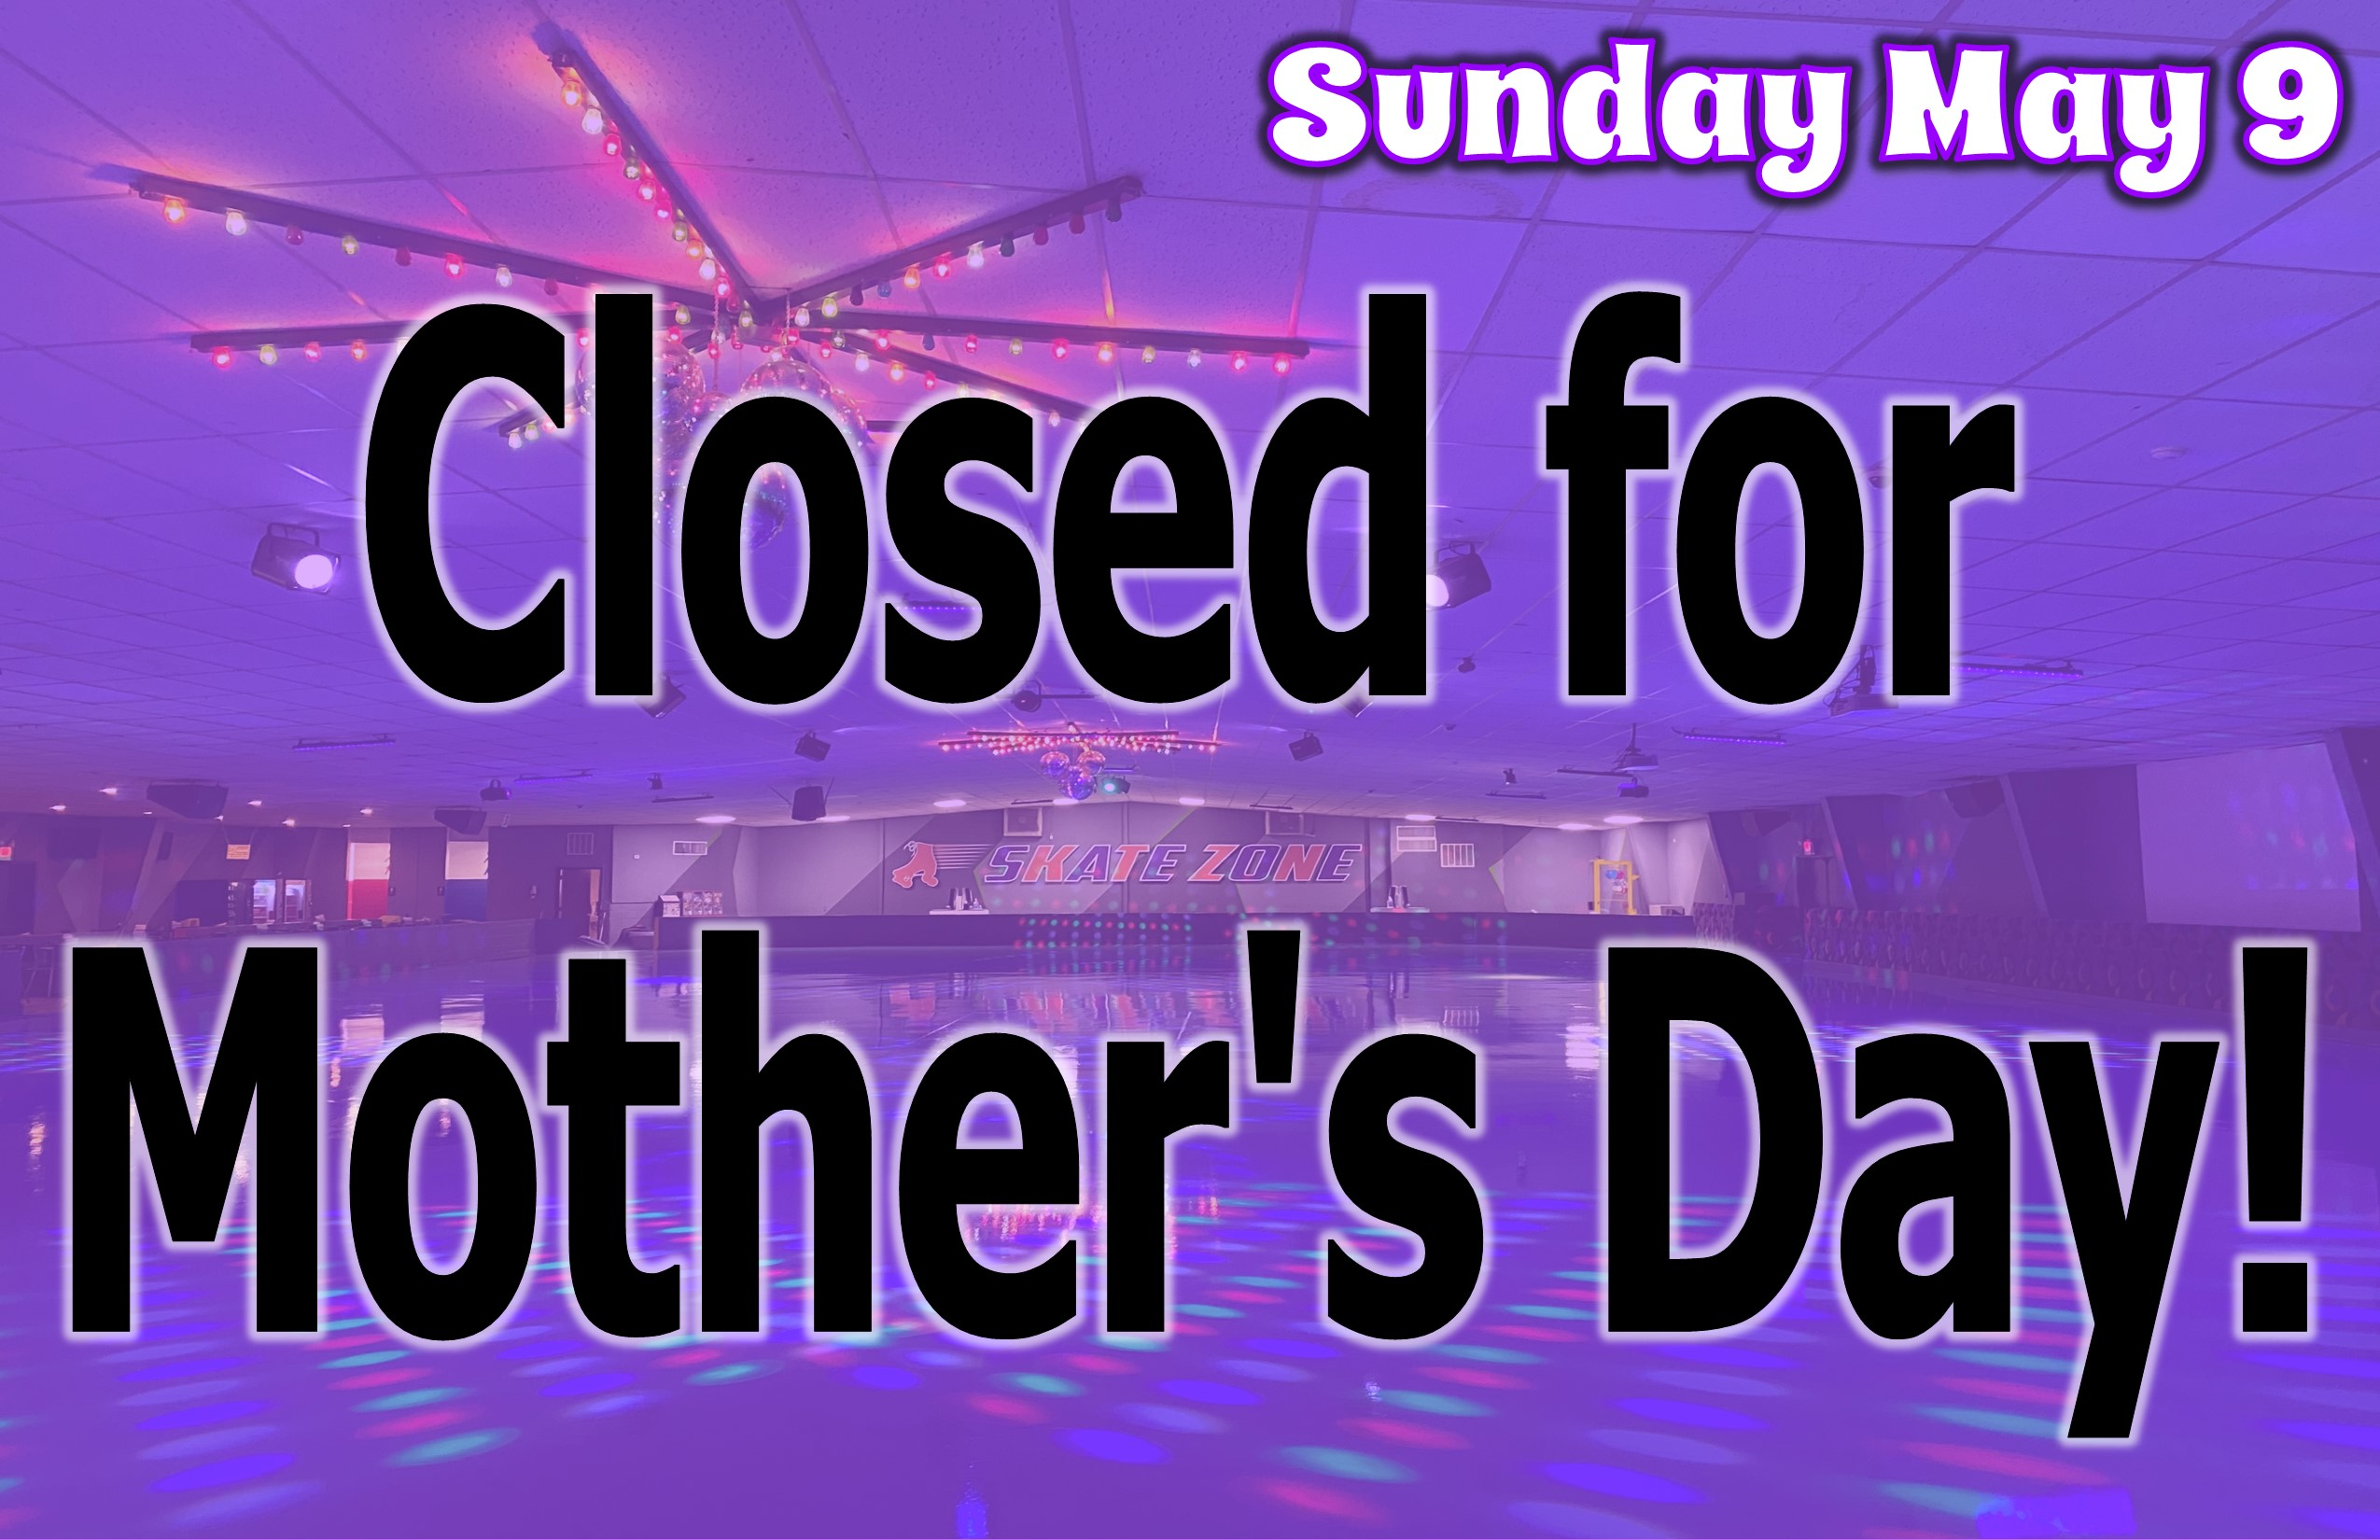 SPECIAL HOURS 2021_MOTHERSDAY CLOSED